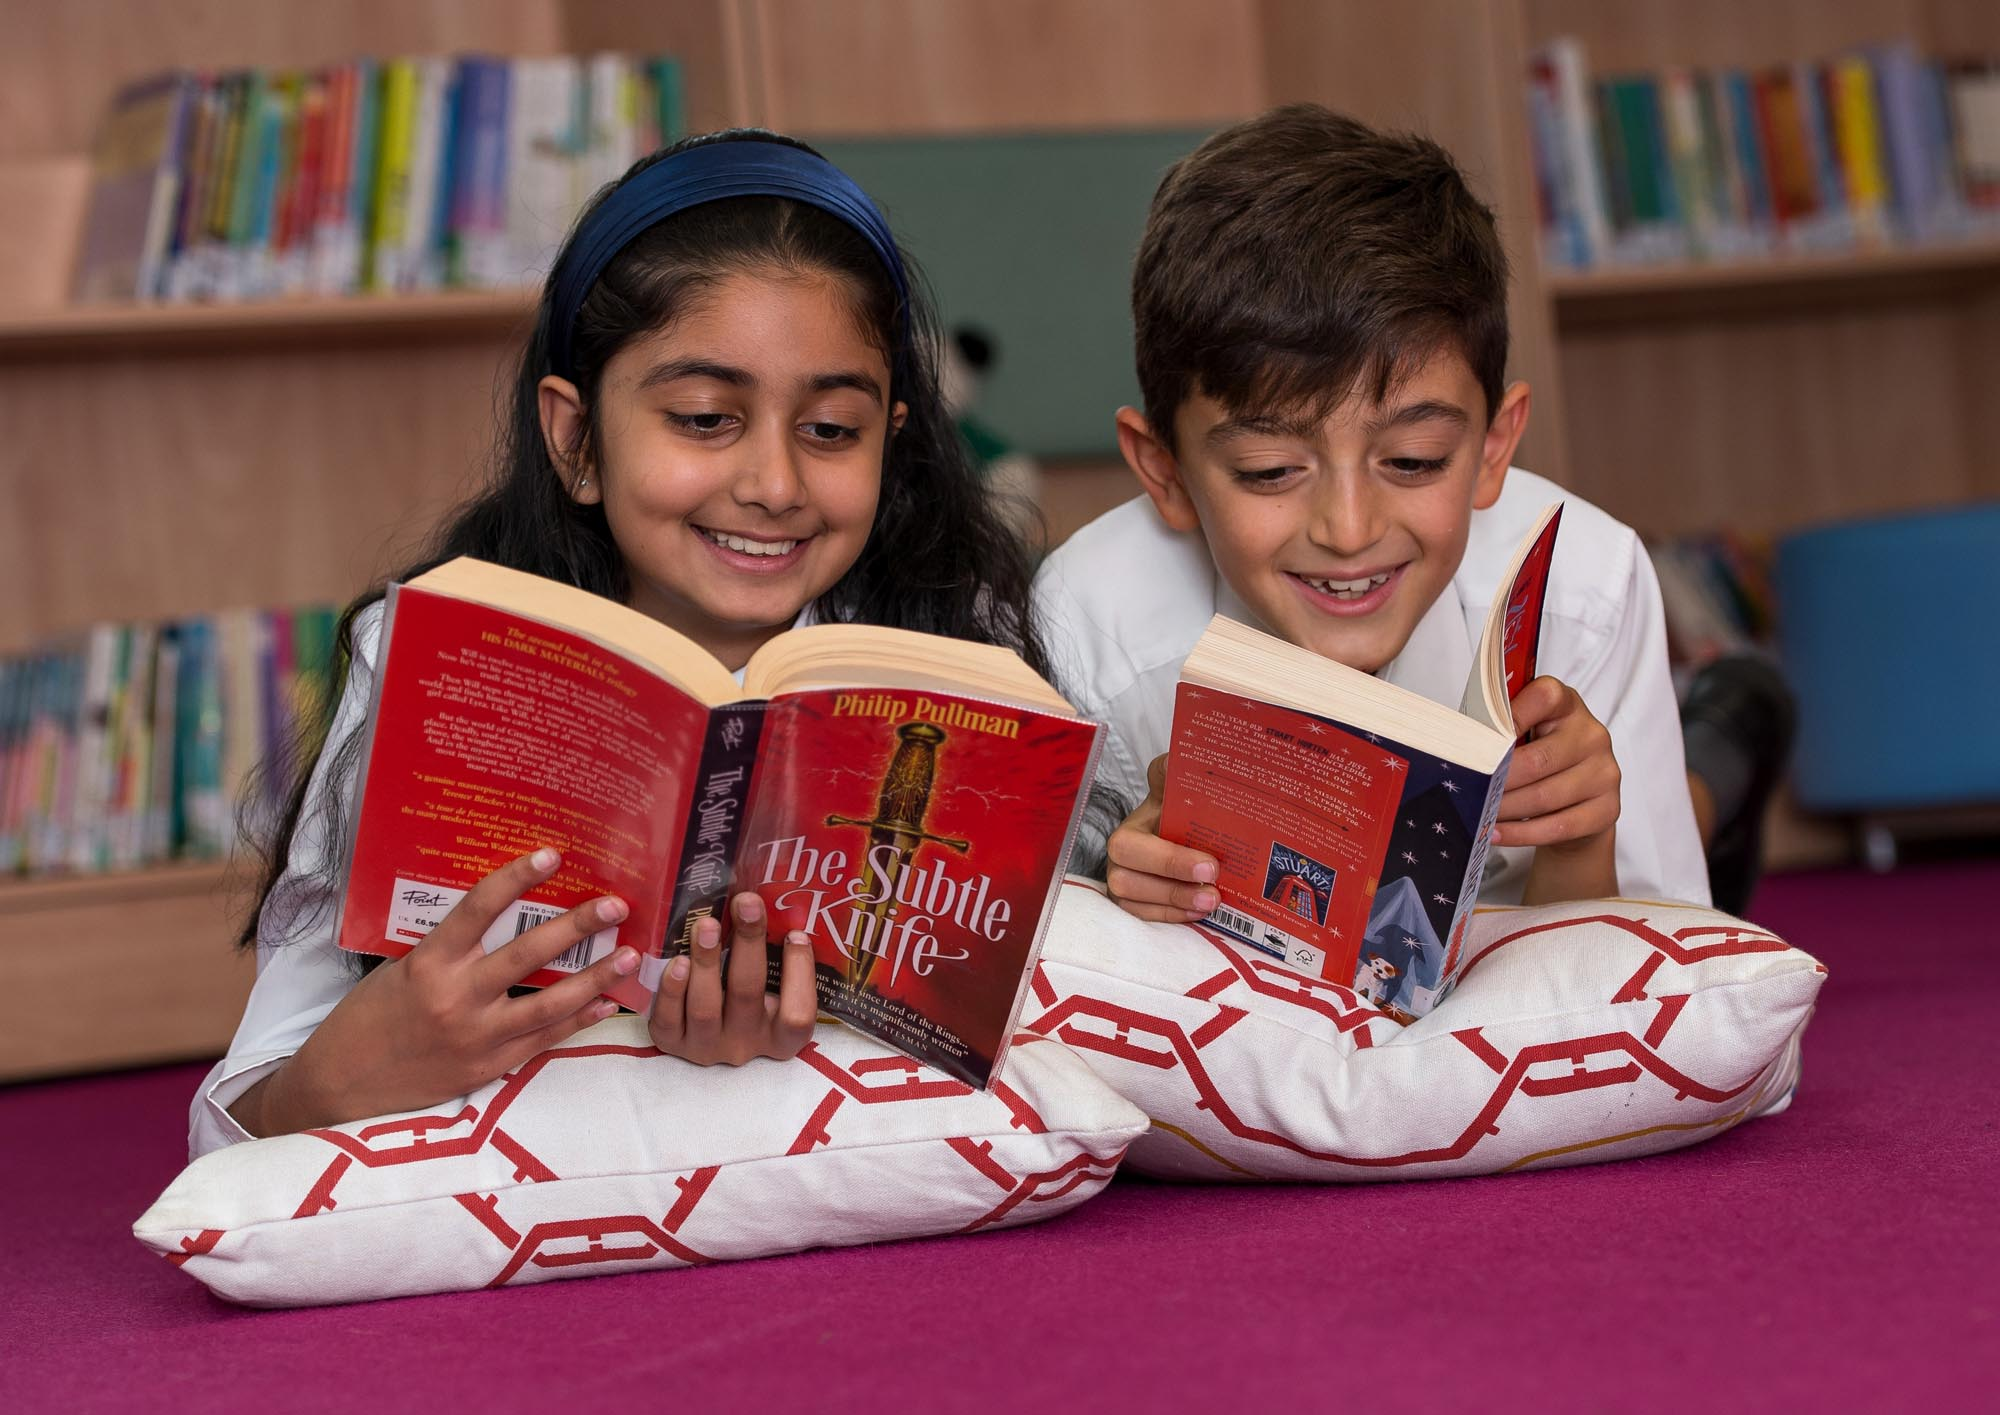 Boy and girl lying on cushions reading books